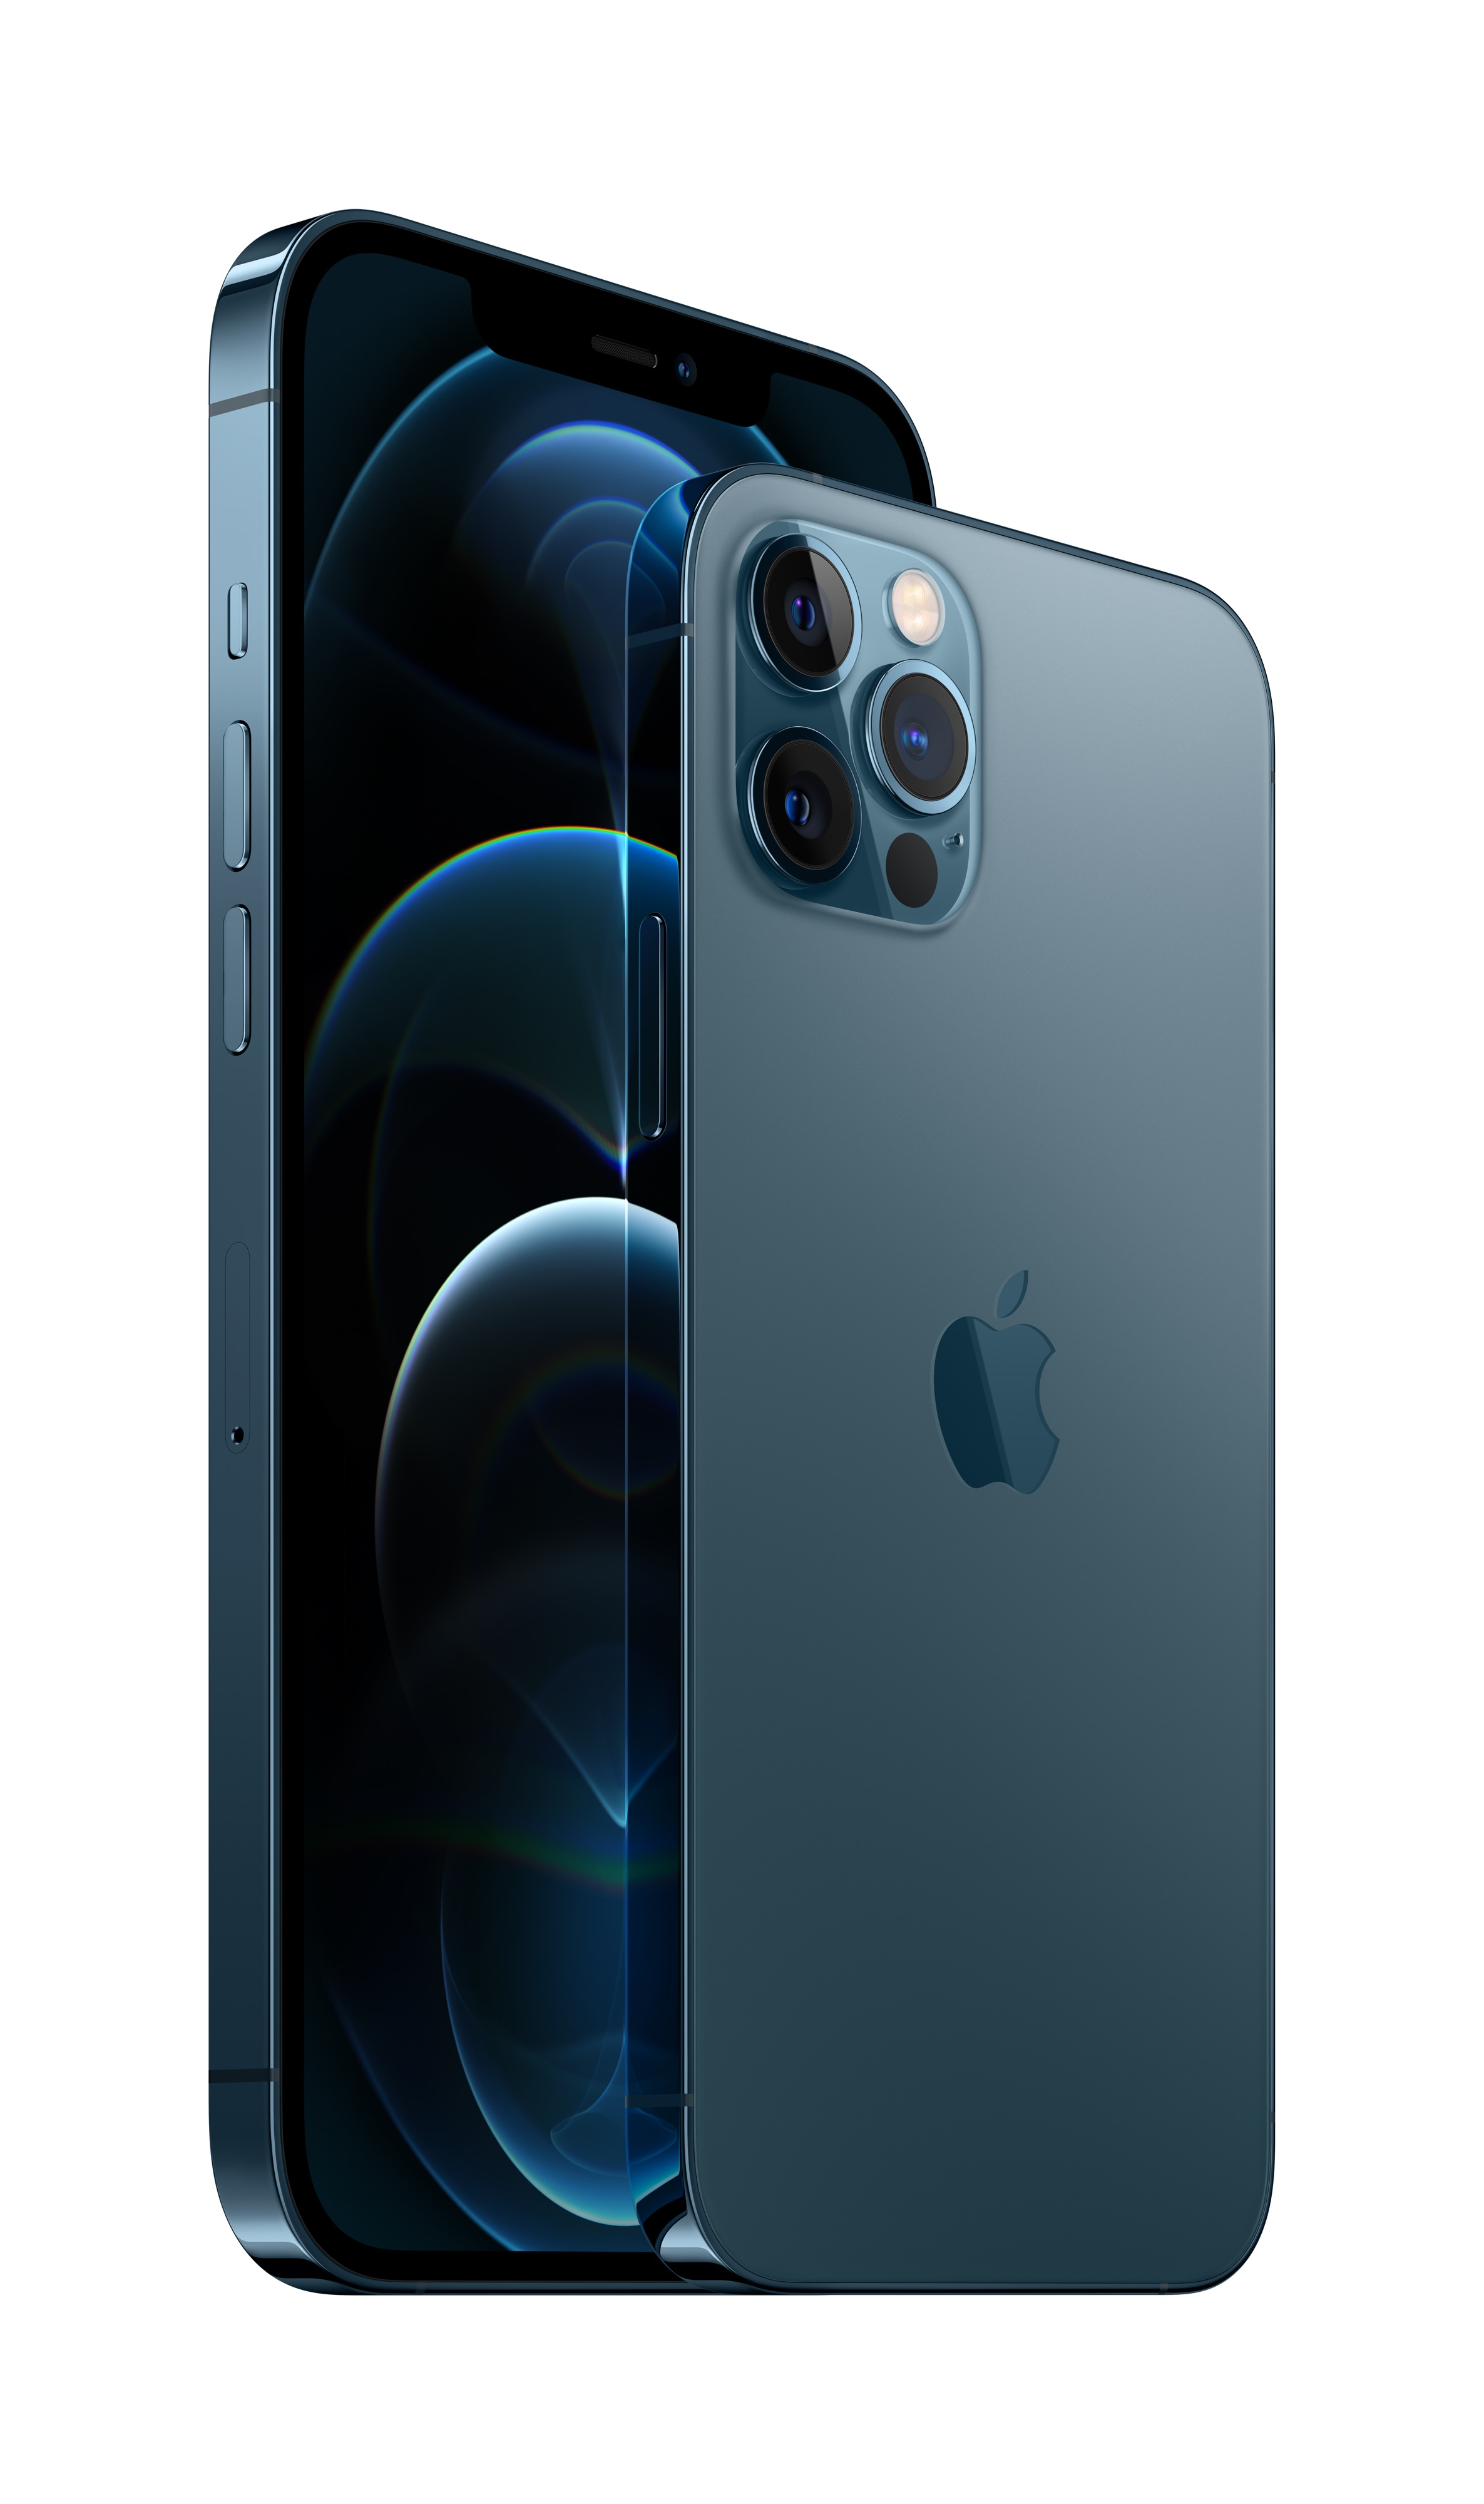 iPhone 12 Pro - now available